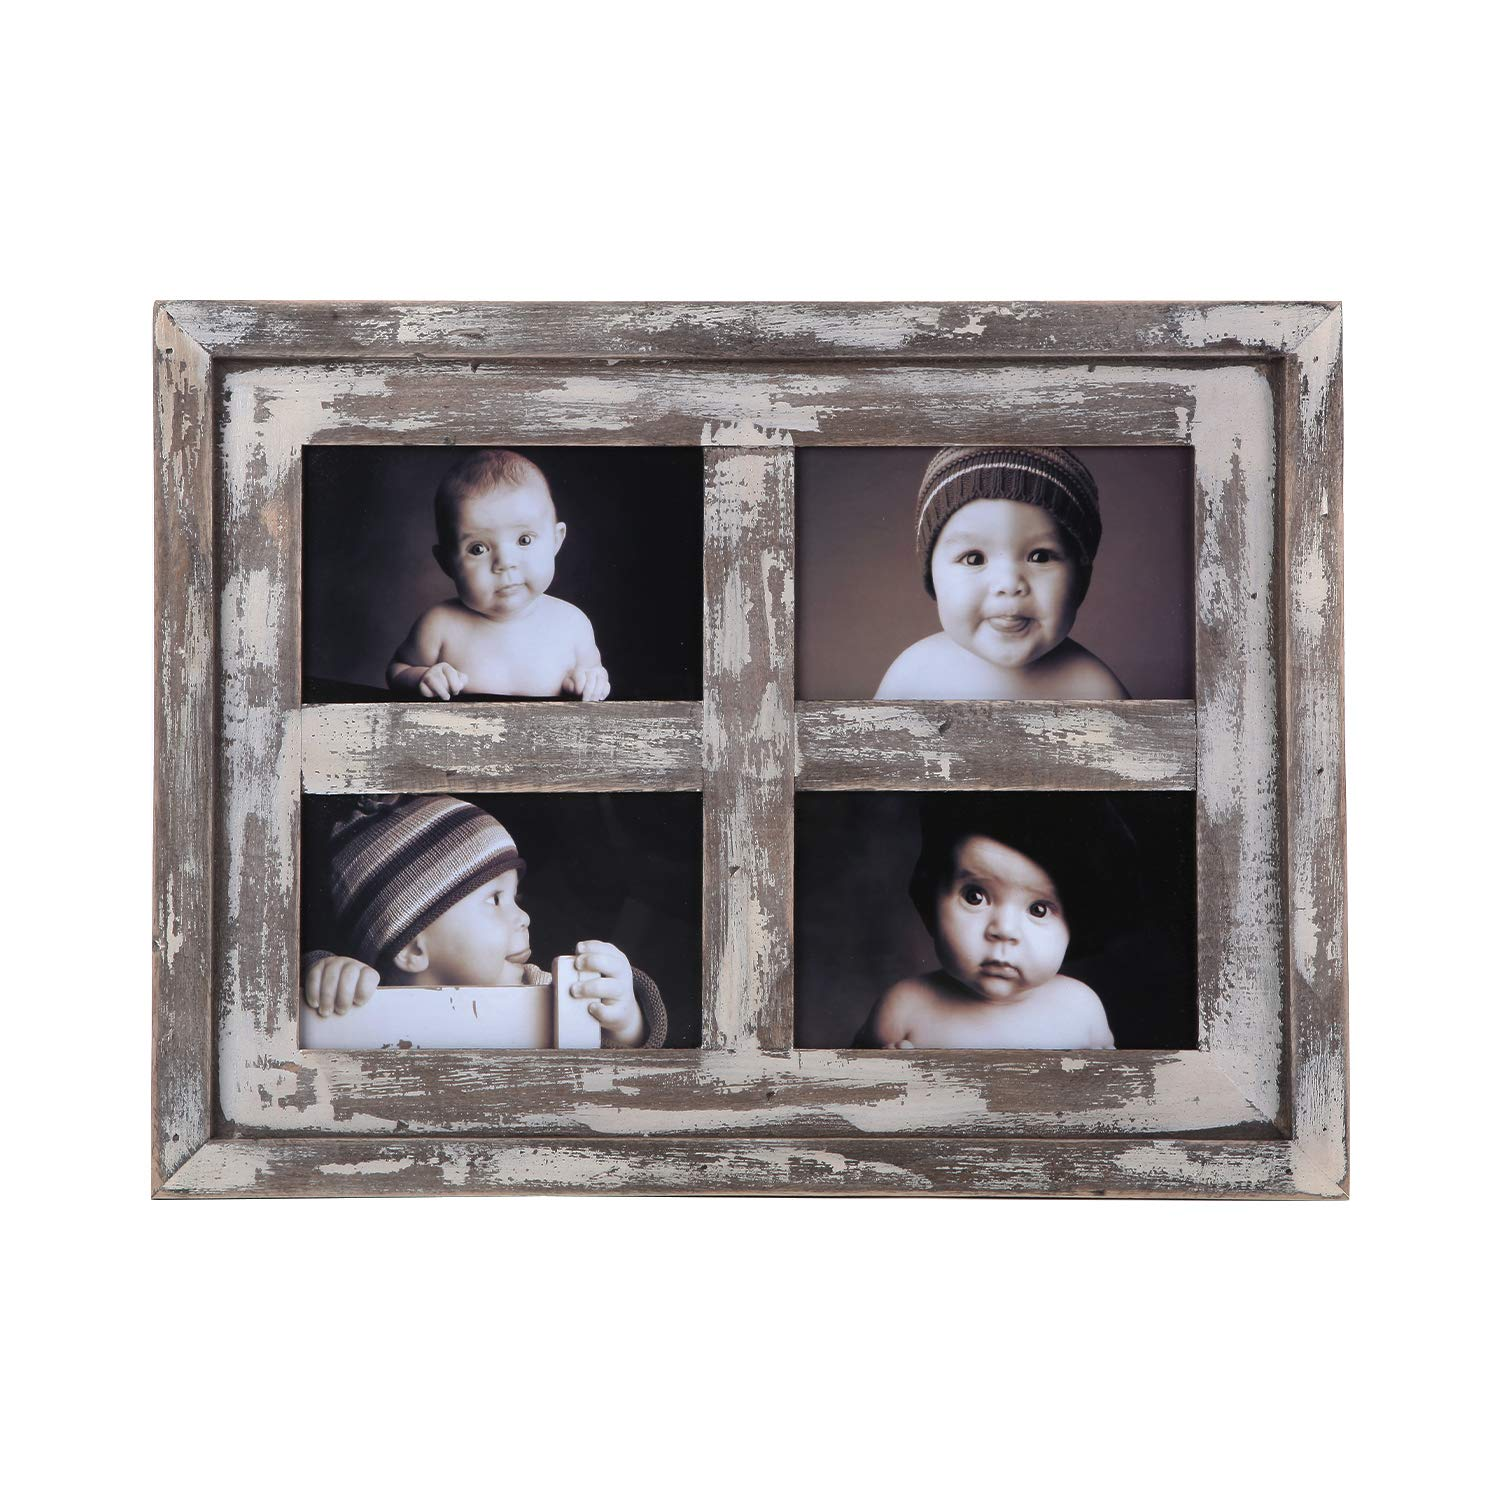 Faunlife Collage Picture Frames Made of Rustic Distressed Weathered Reclaimed Wood - Display Four 4x6 Pictures, White by Faunlife